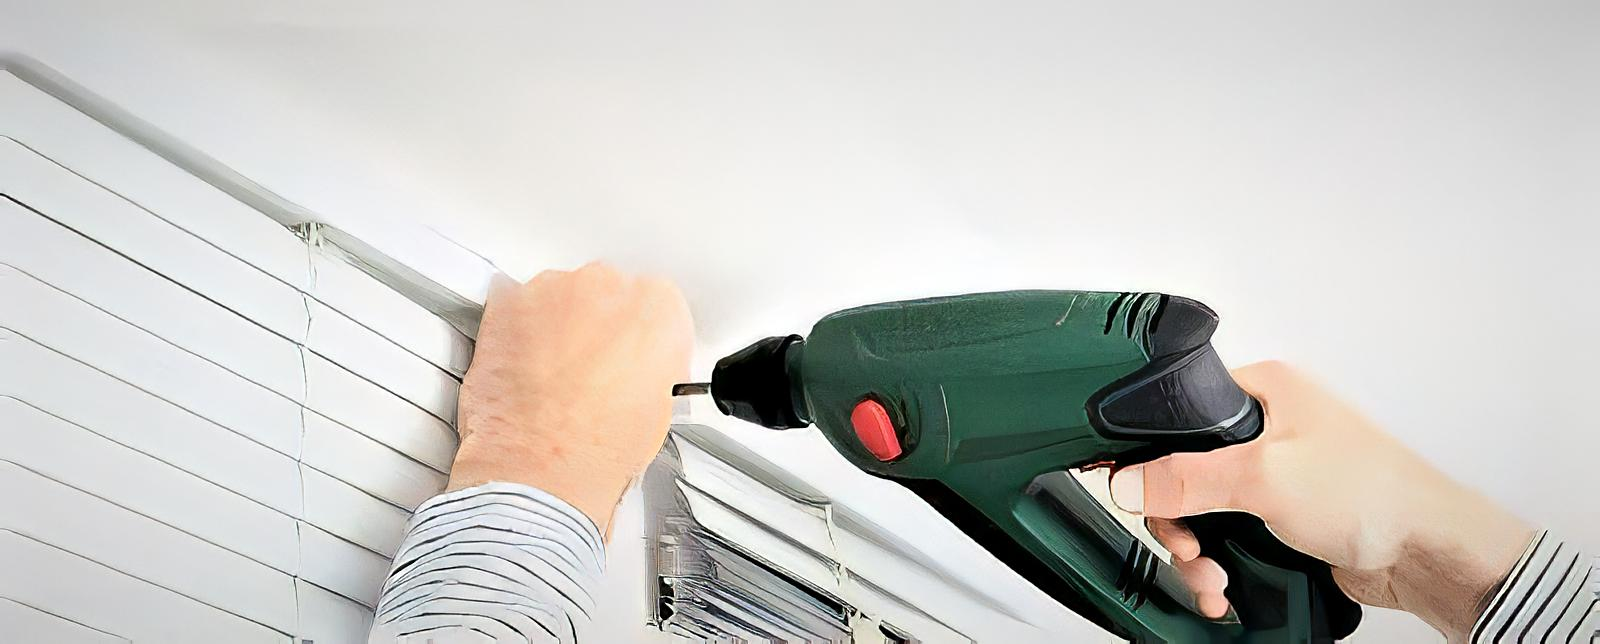 Using screw driver for blinds fitting